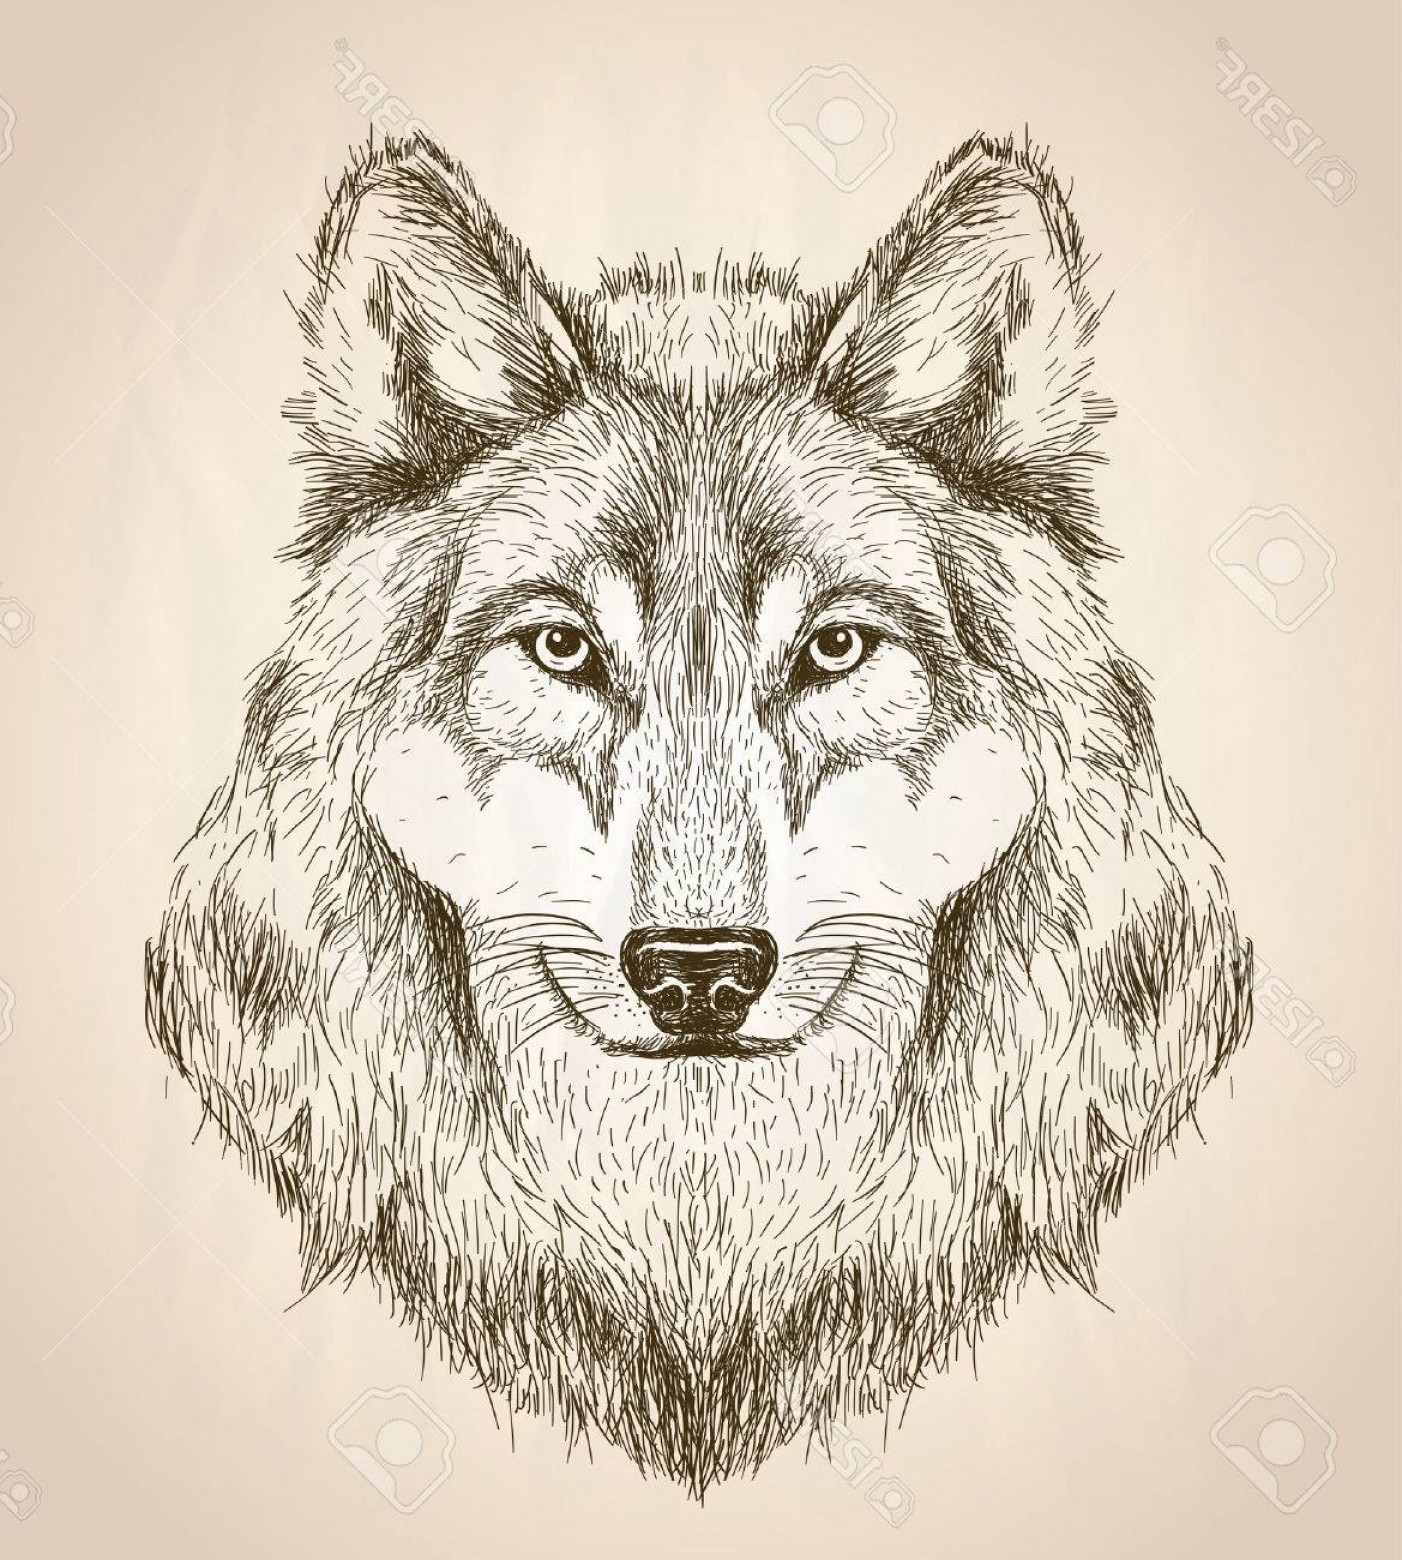 Calm Wolf Vector: Photostock Vector Vector Sketch Illustration Of A Wolf Head Front View Black And White Vector Wildlife Design